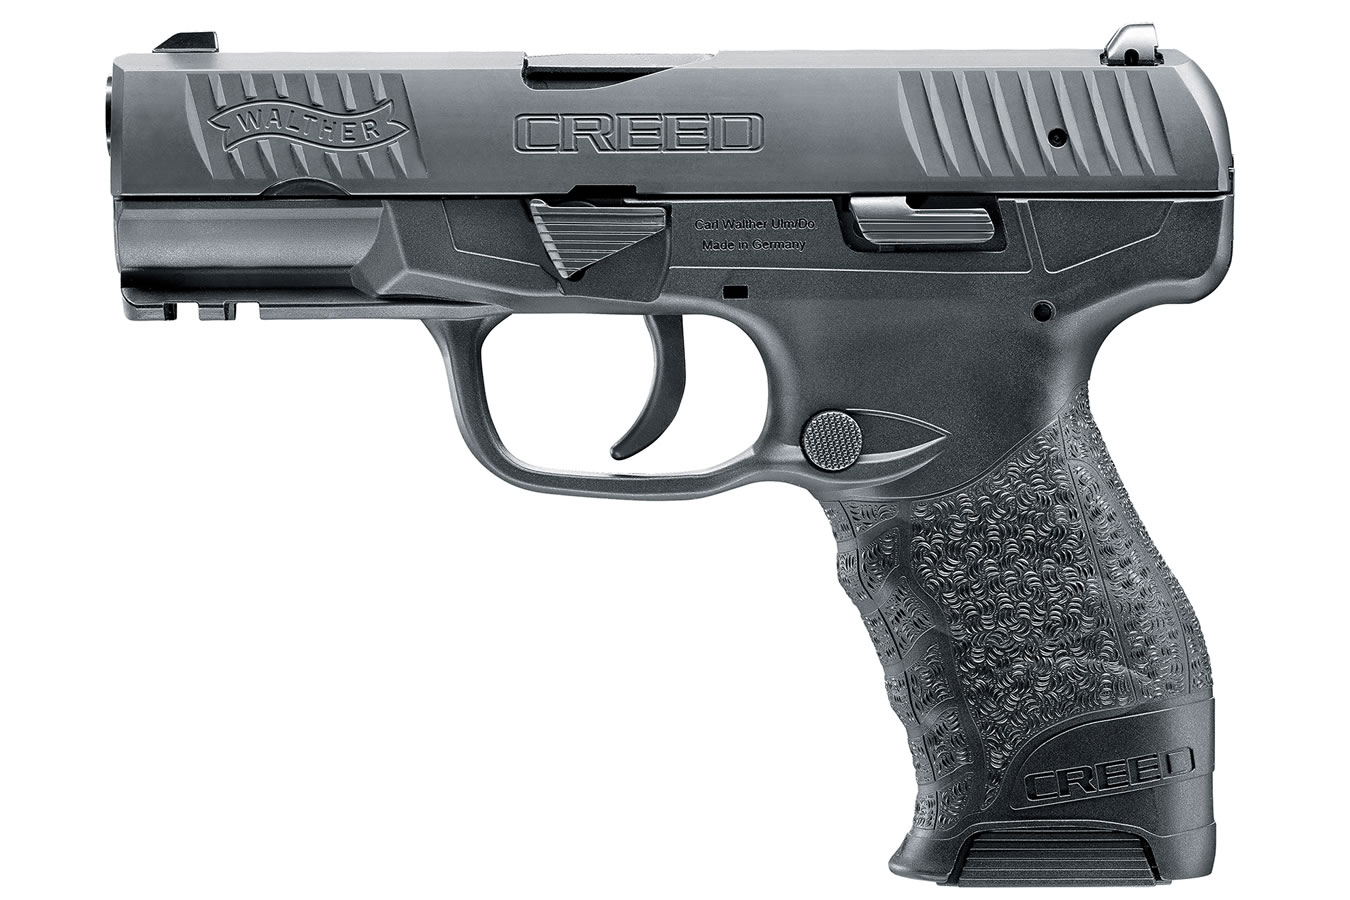 Creed 9mm 10-Round Pistol